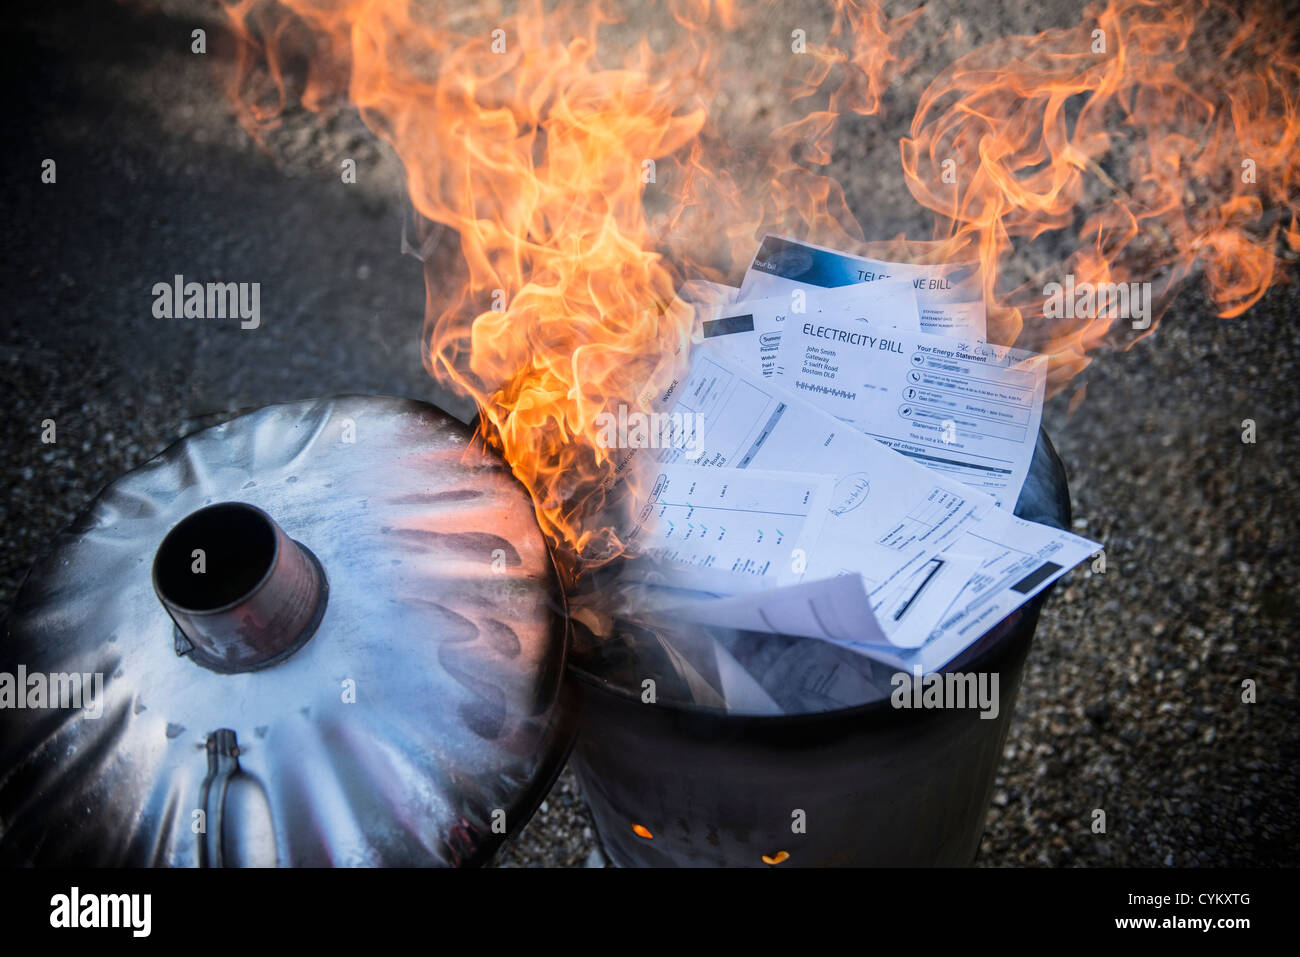 Documents burning in garbage can - Stock Image